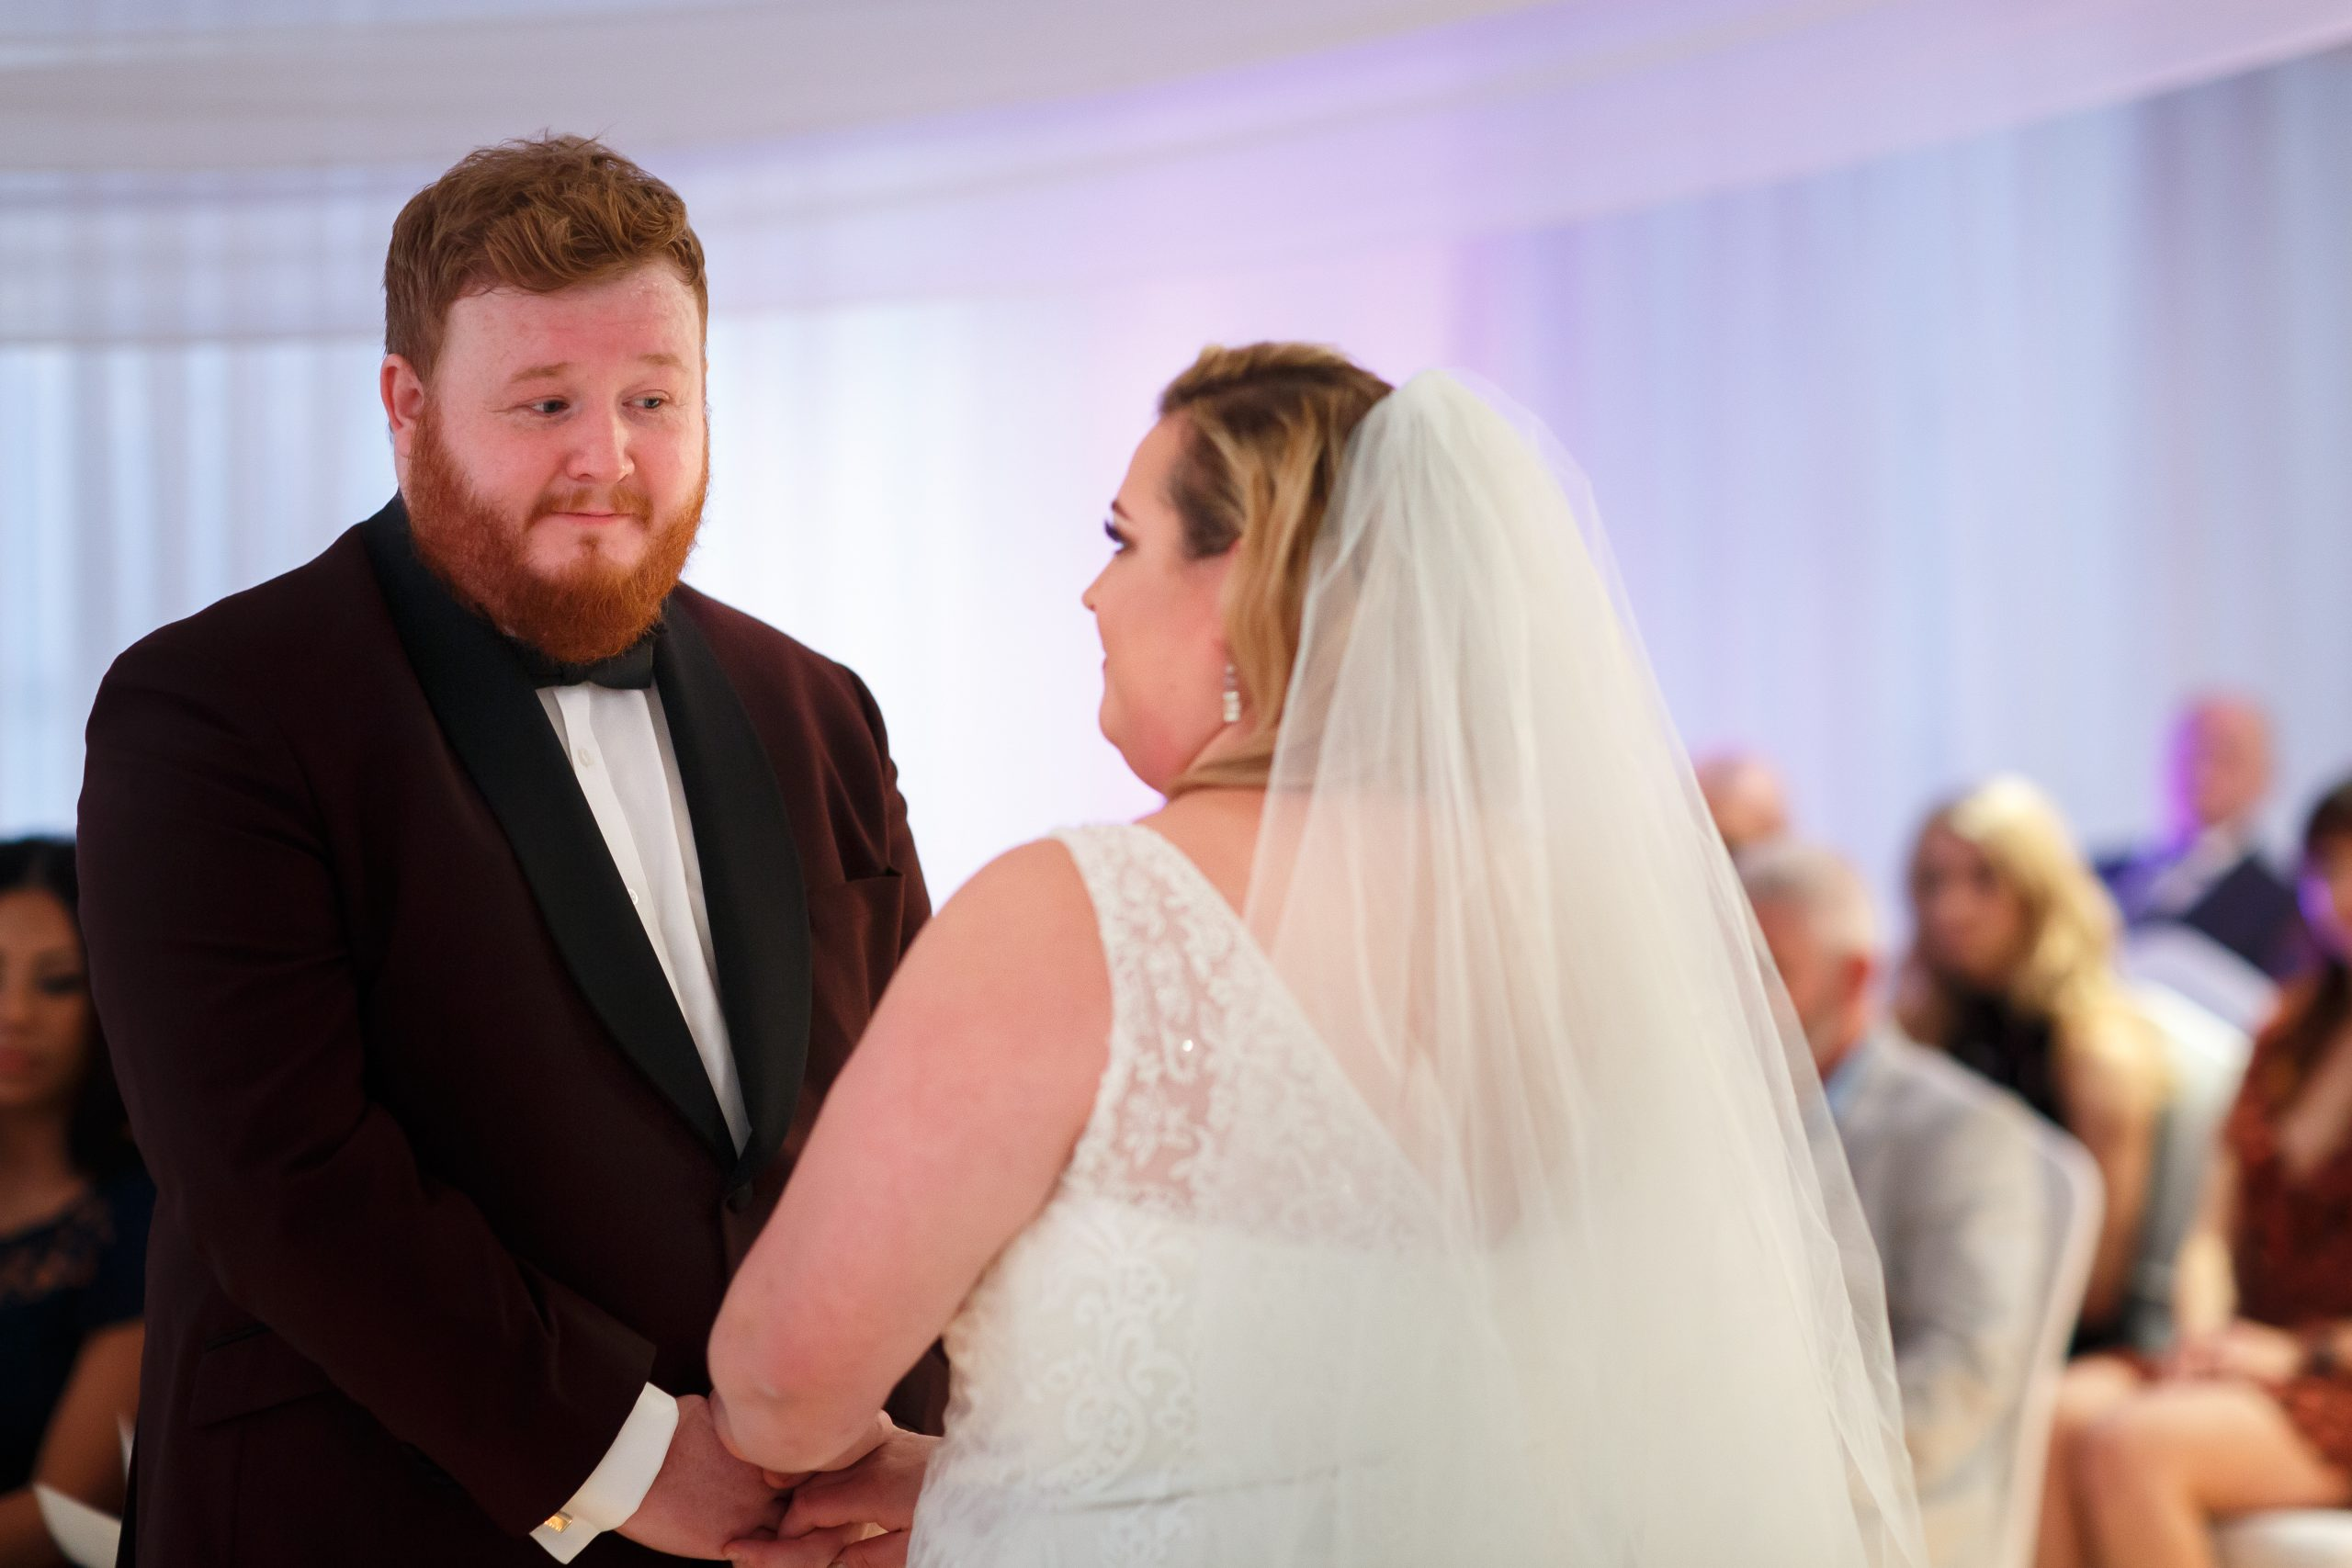 Groom with ginger and beard hair looking emotionally towards bride during wedding ceremony | Foxfields Country House Wedding Photography